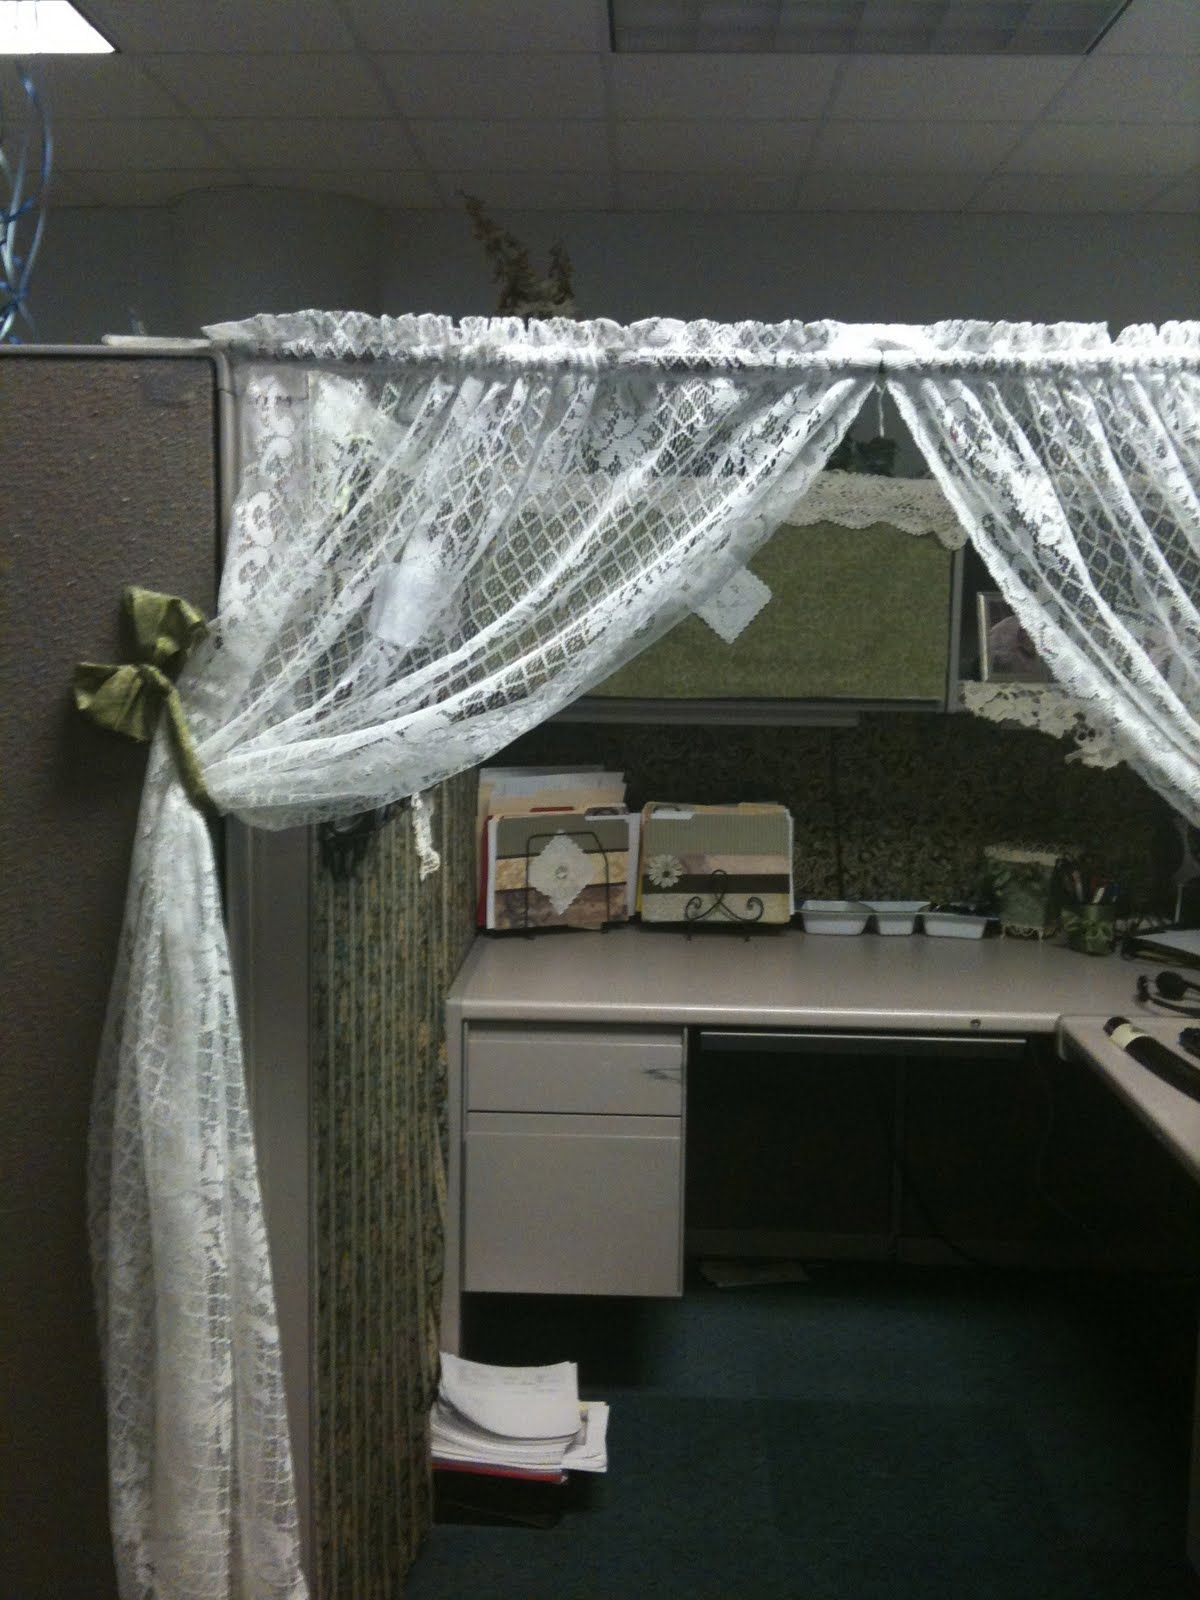 Office cubicle curtains - Work Cubicle Curtains Office Cubicle Curtains Work Cubicle Curtains The Sci Fi Cubicle Http Www